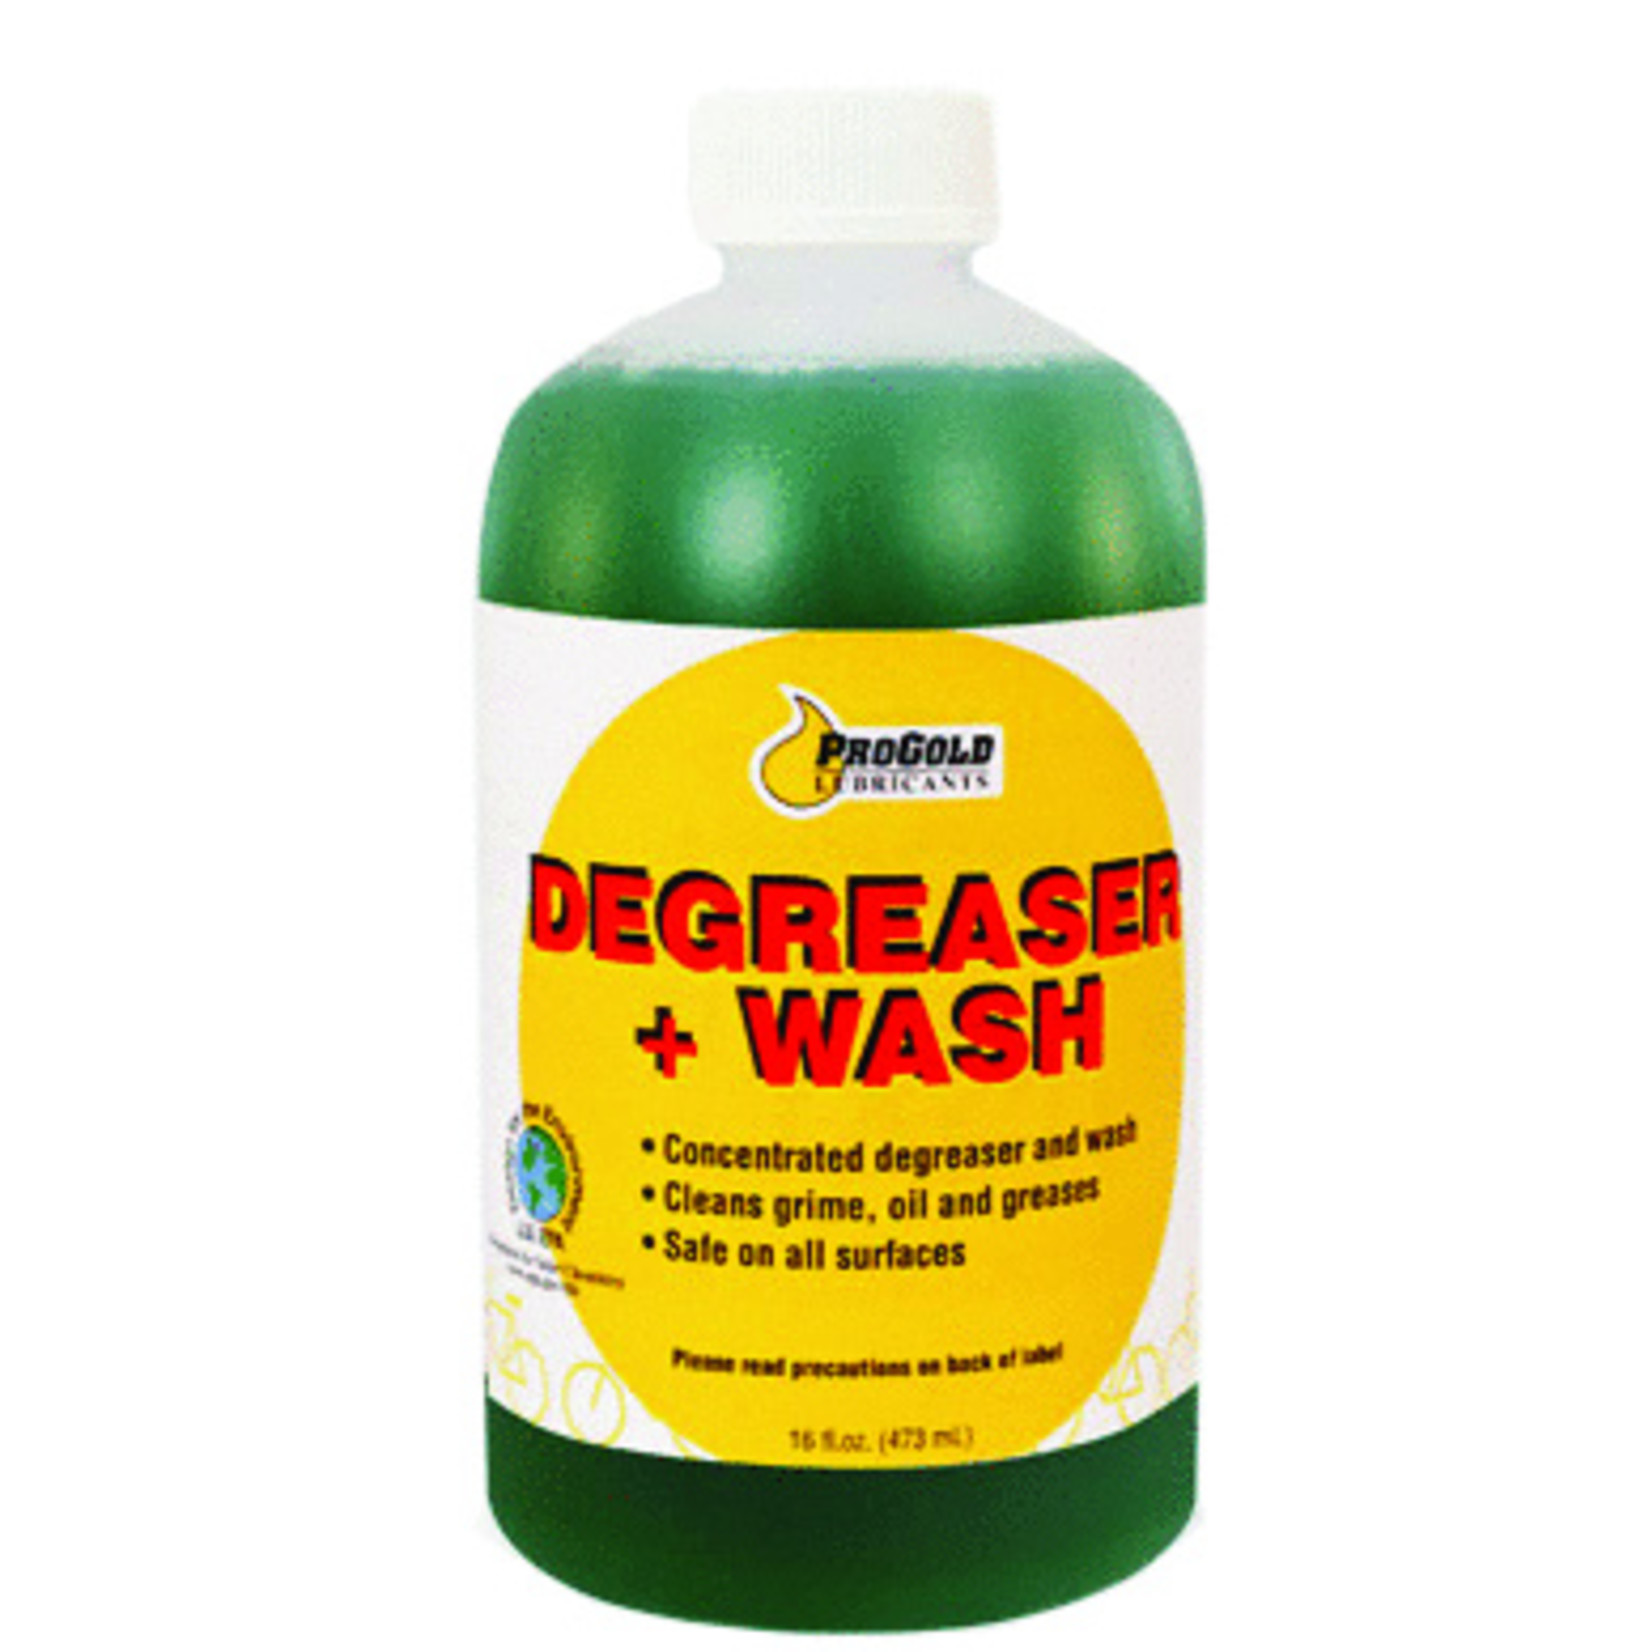 PRO GOLD PRO GOLD Degreaser, 473mL